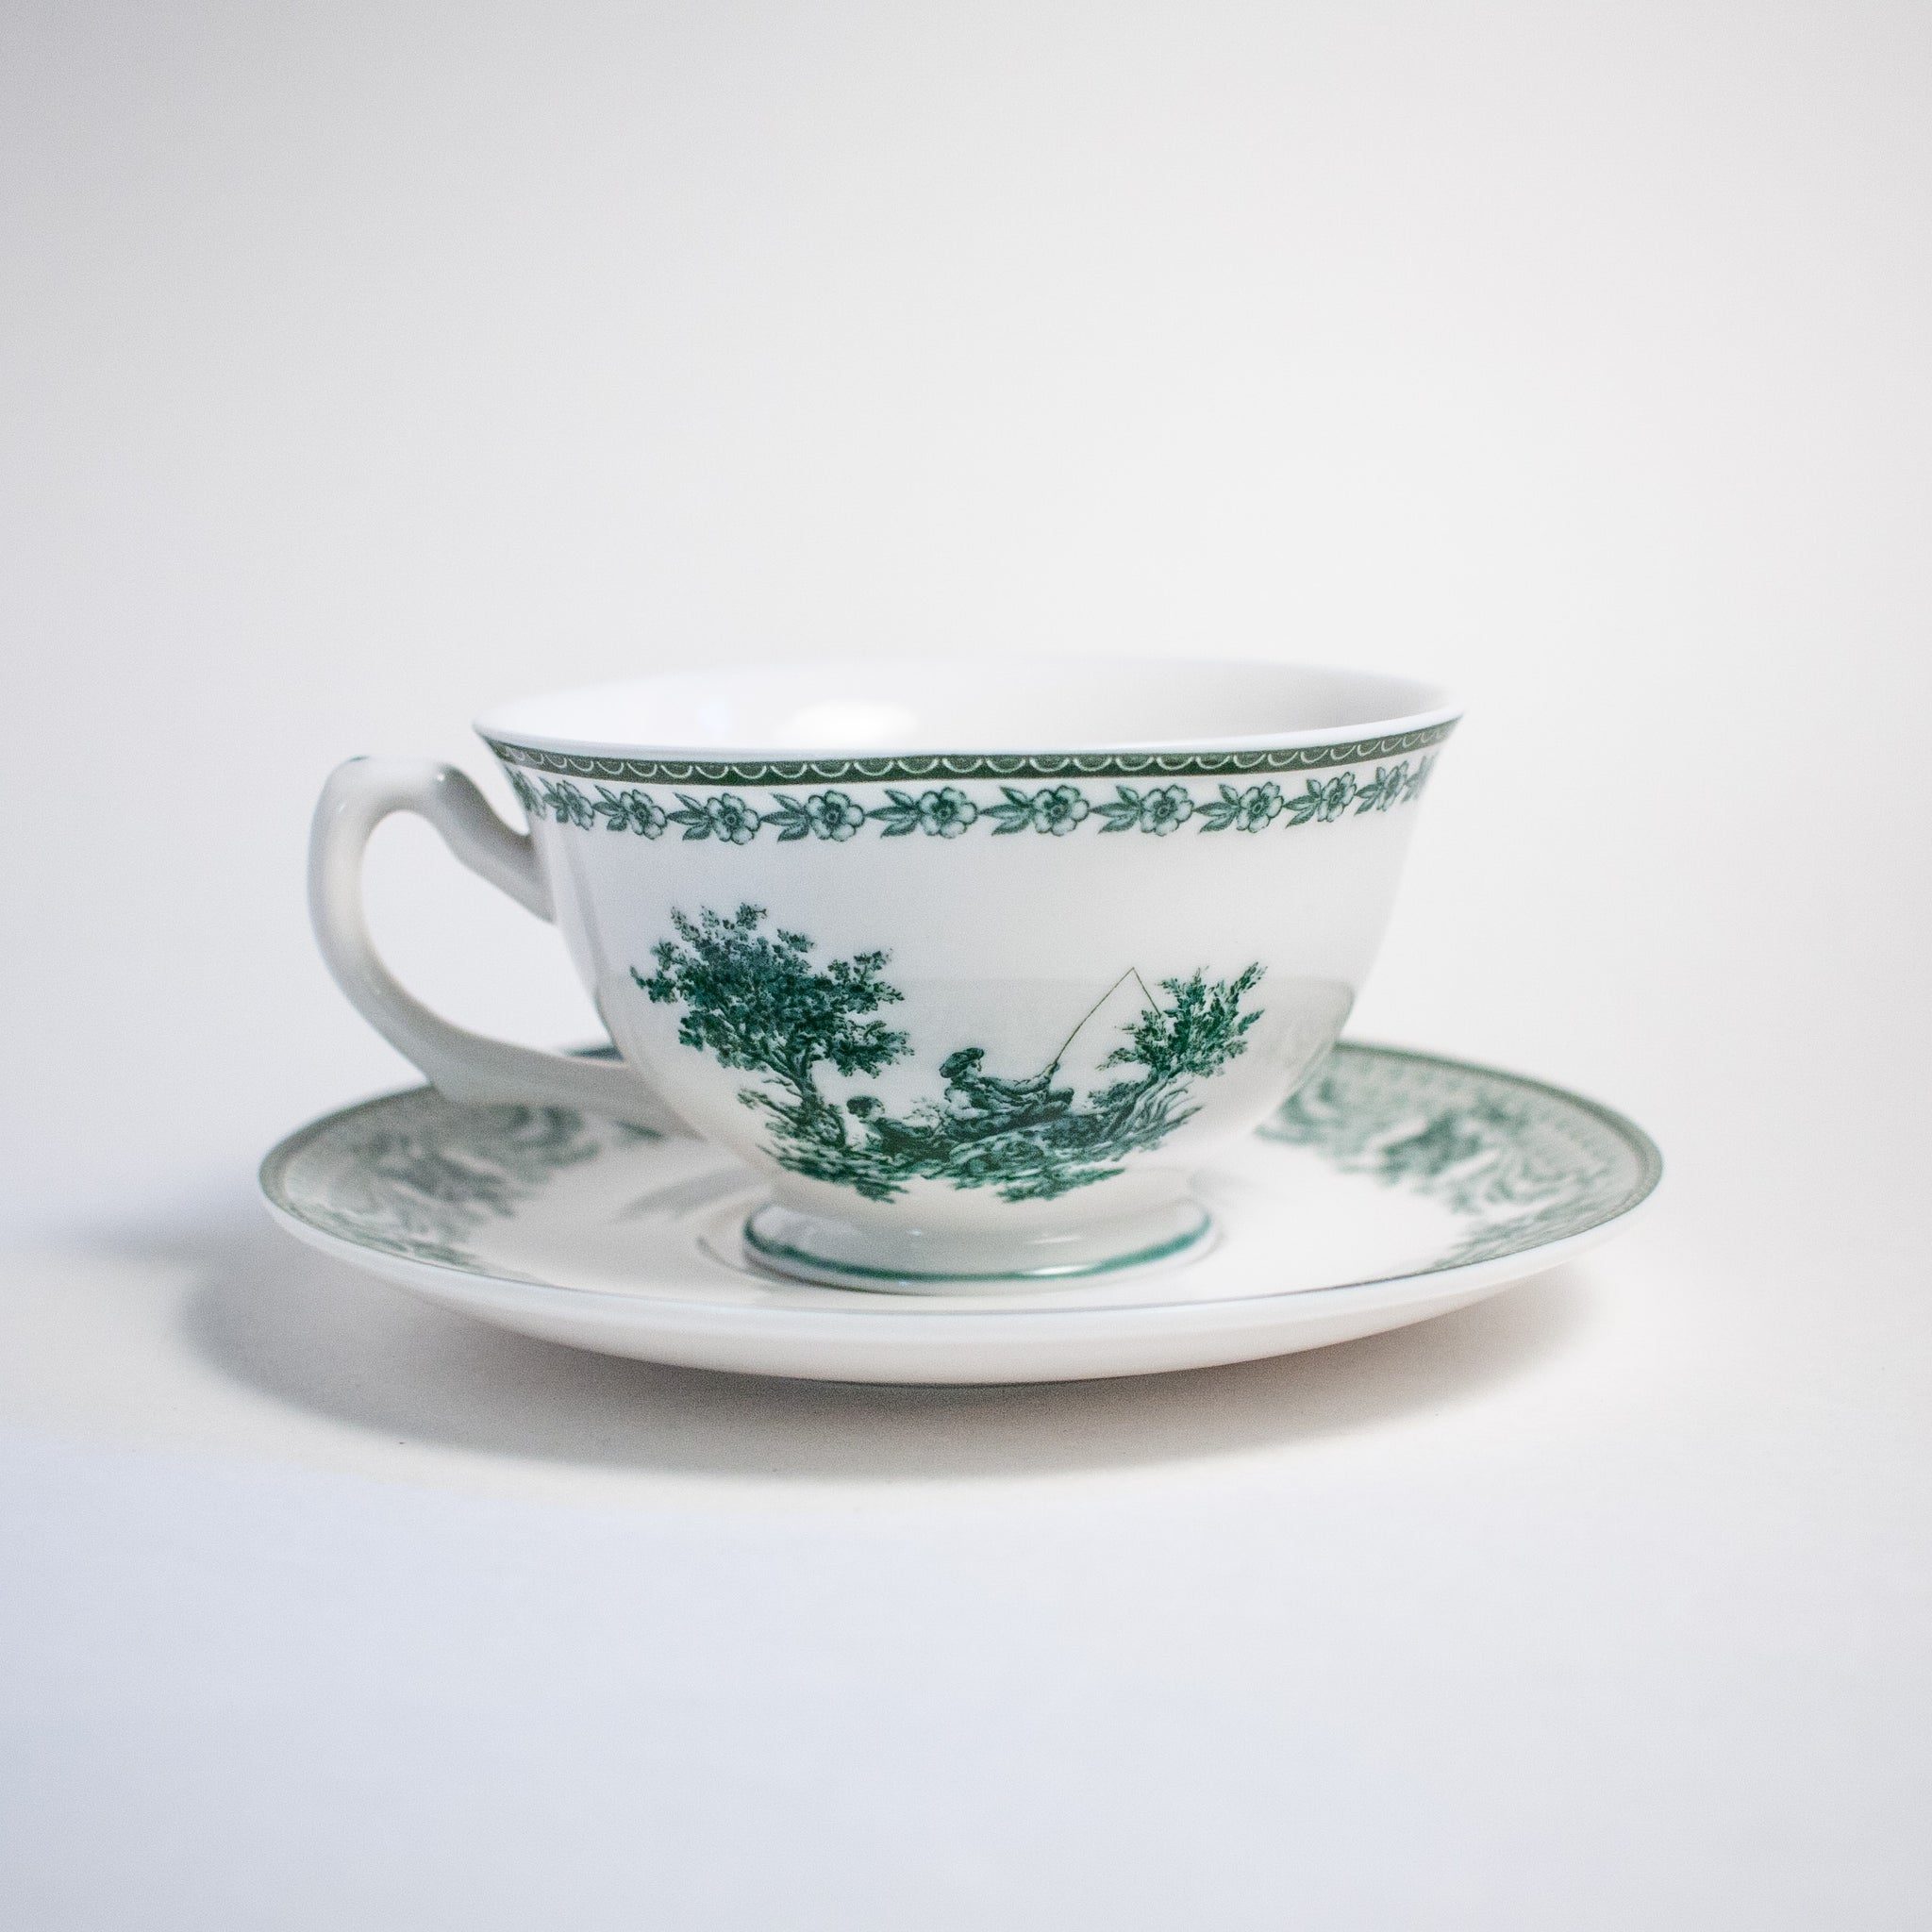 Green Pastoral Transferware Teacup and Saucer